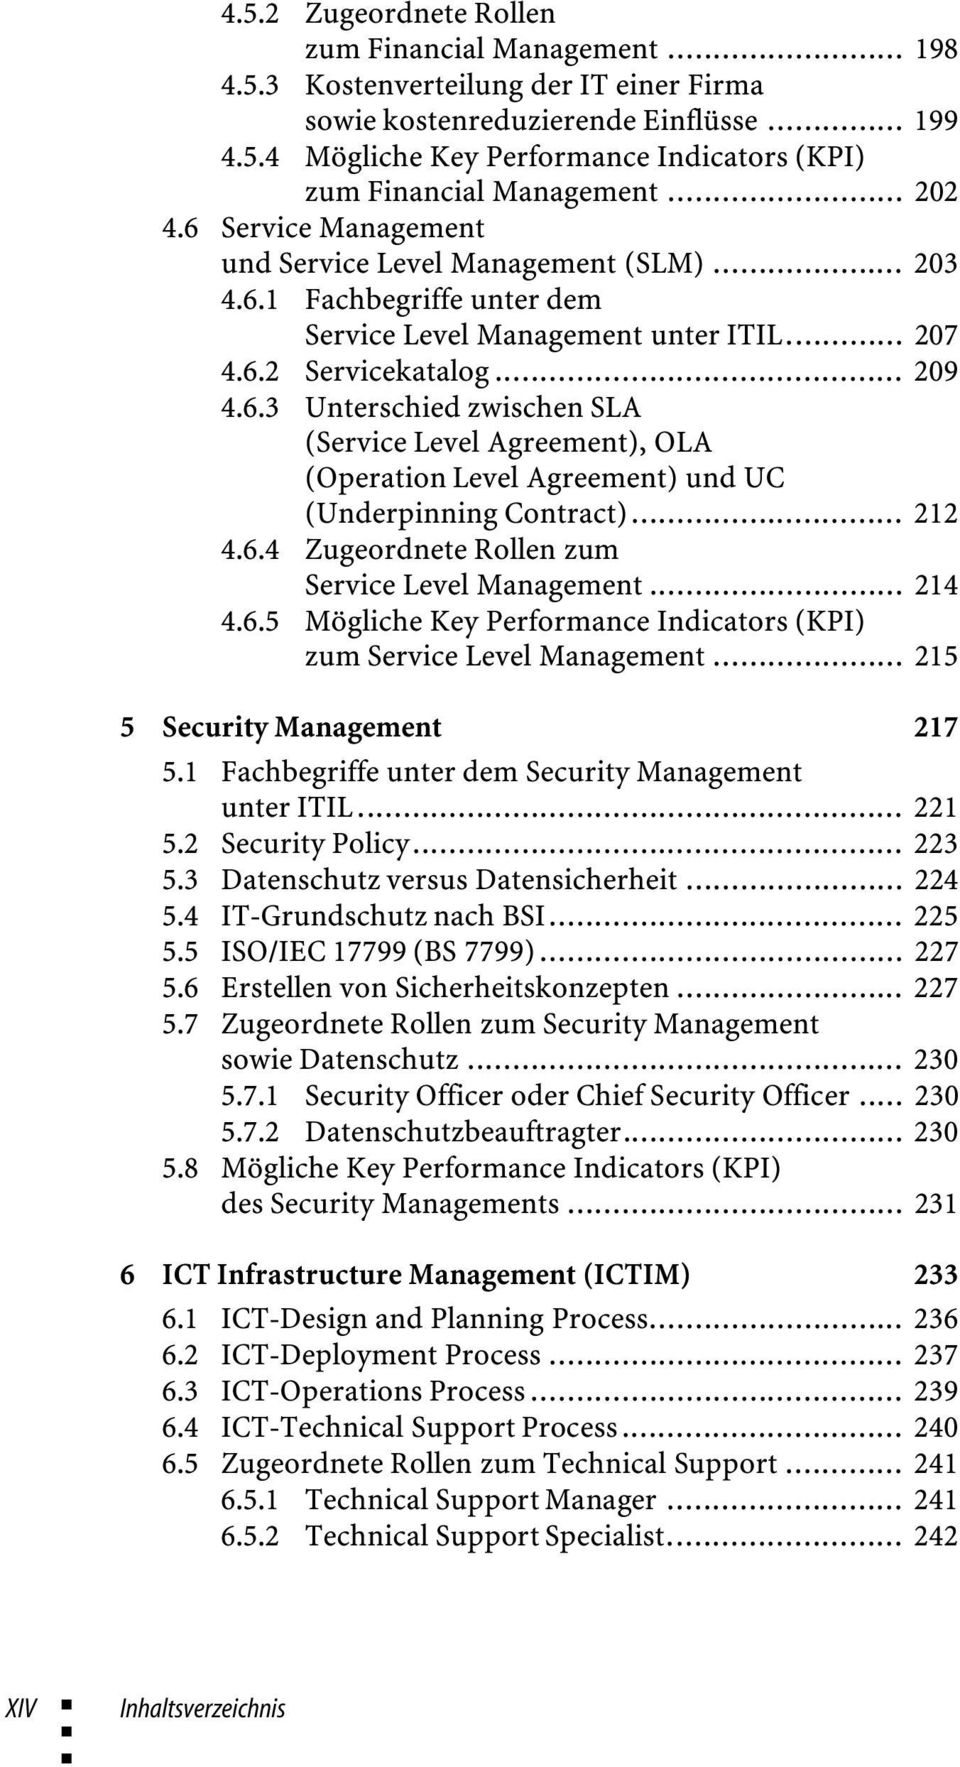 .. 212 4.6.4 Zugeordnete Rollen zum Service Level Management... 214 4.6.5 Mögliche Key Performance Indicators (KPI) zum Service Level Management... 215 5 Security Management 217 5.